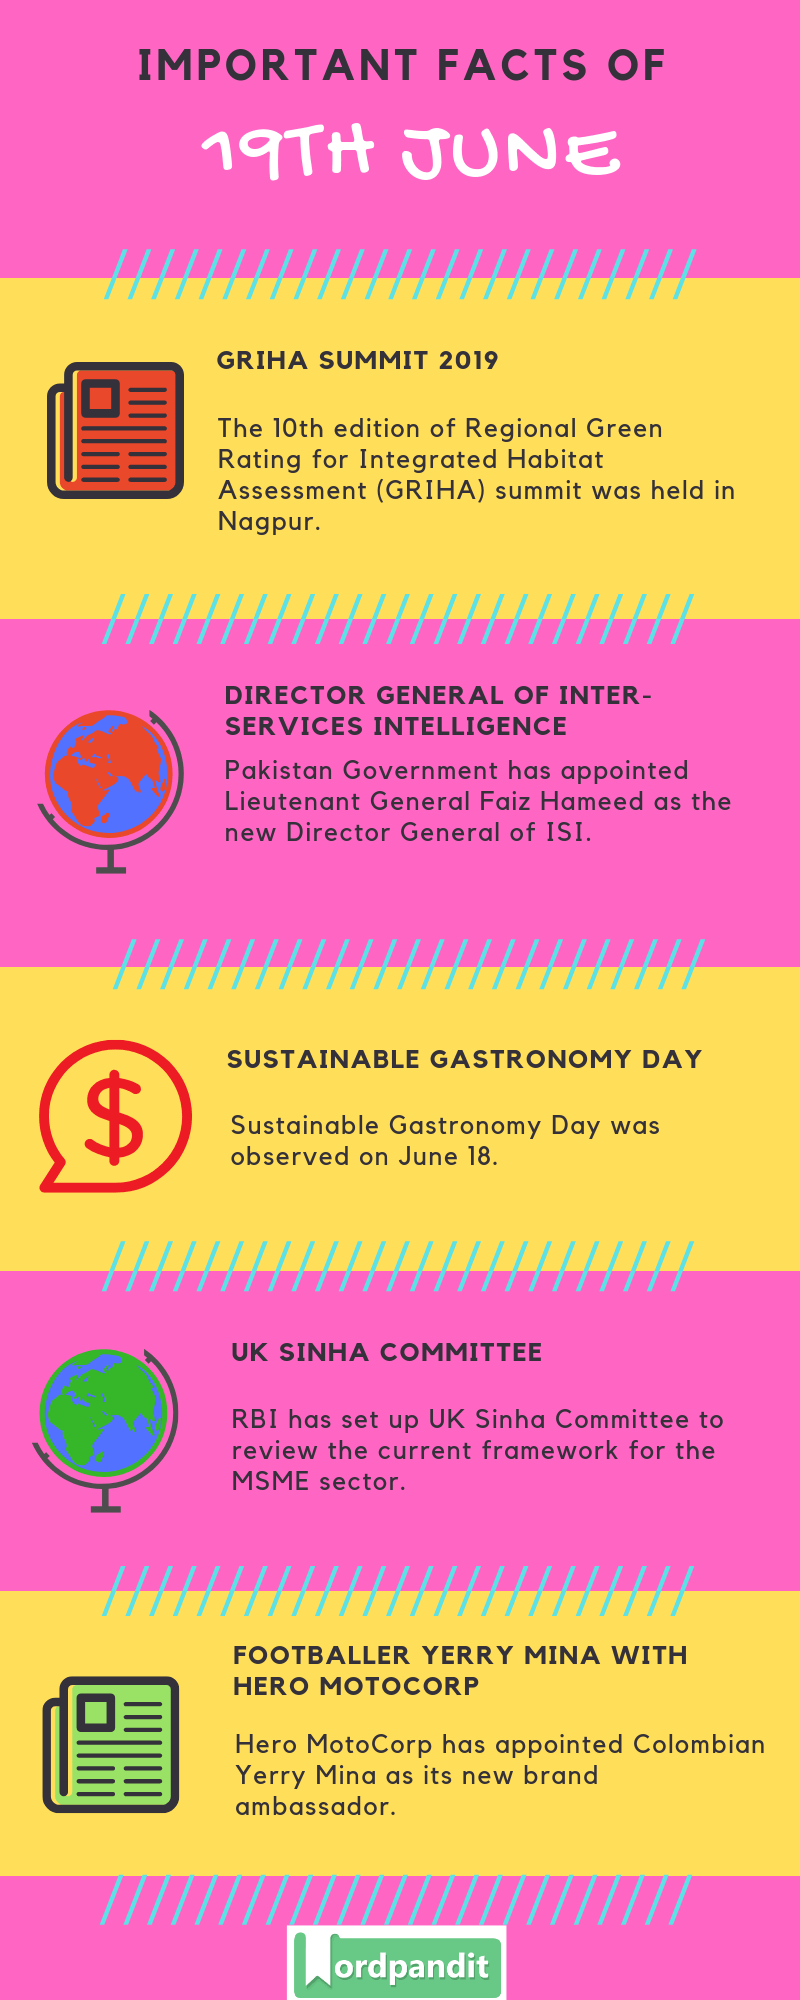 Daily Current Affairs 19 June 2019 Current Affairs Quiz 19 June 2019 Current Affairs Infographic